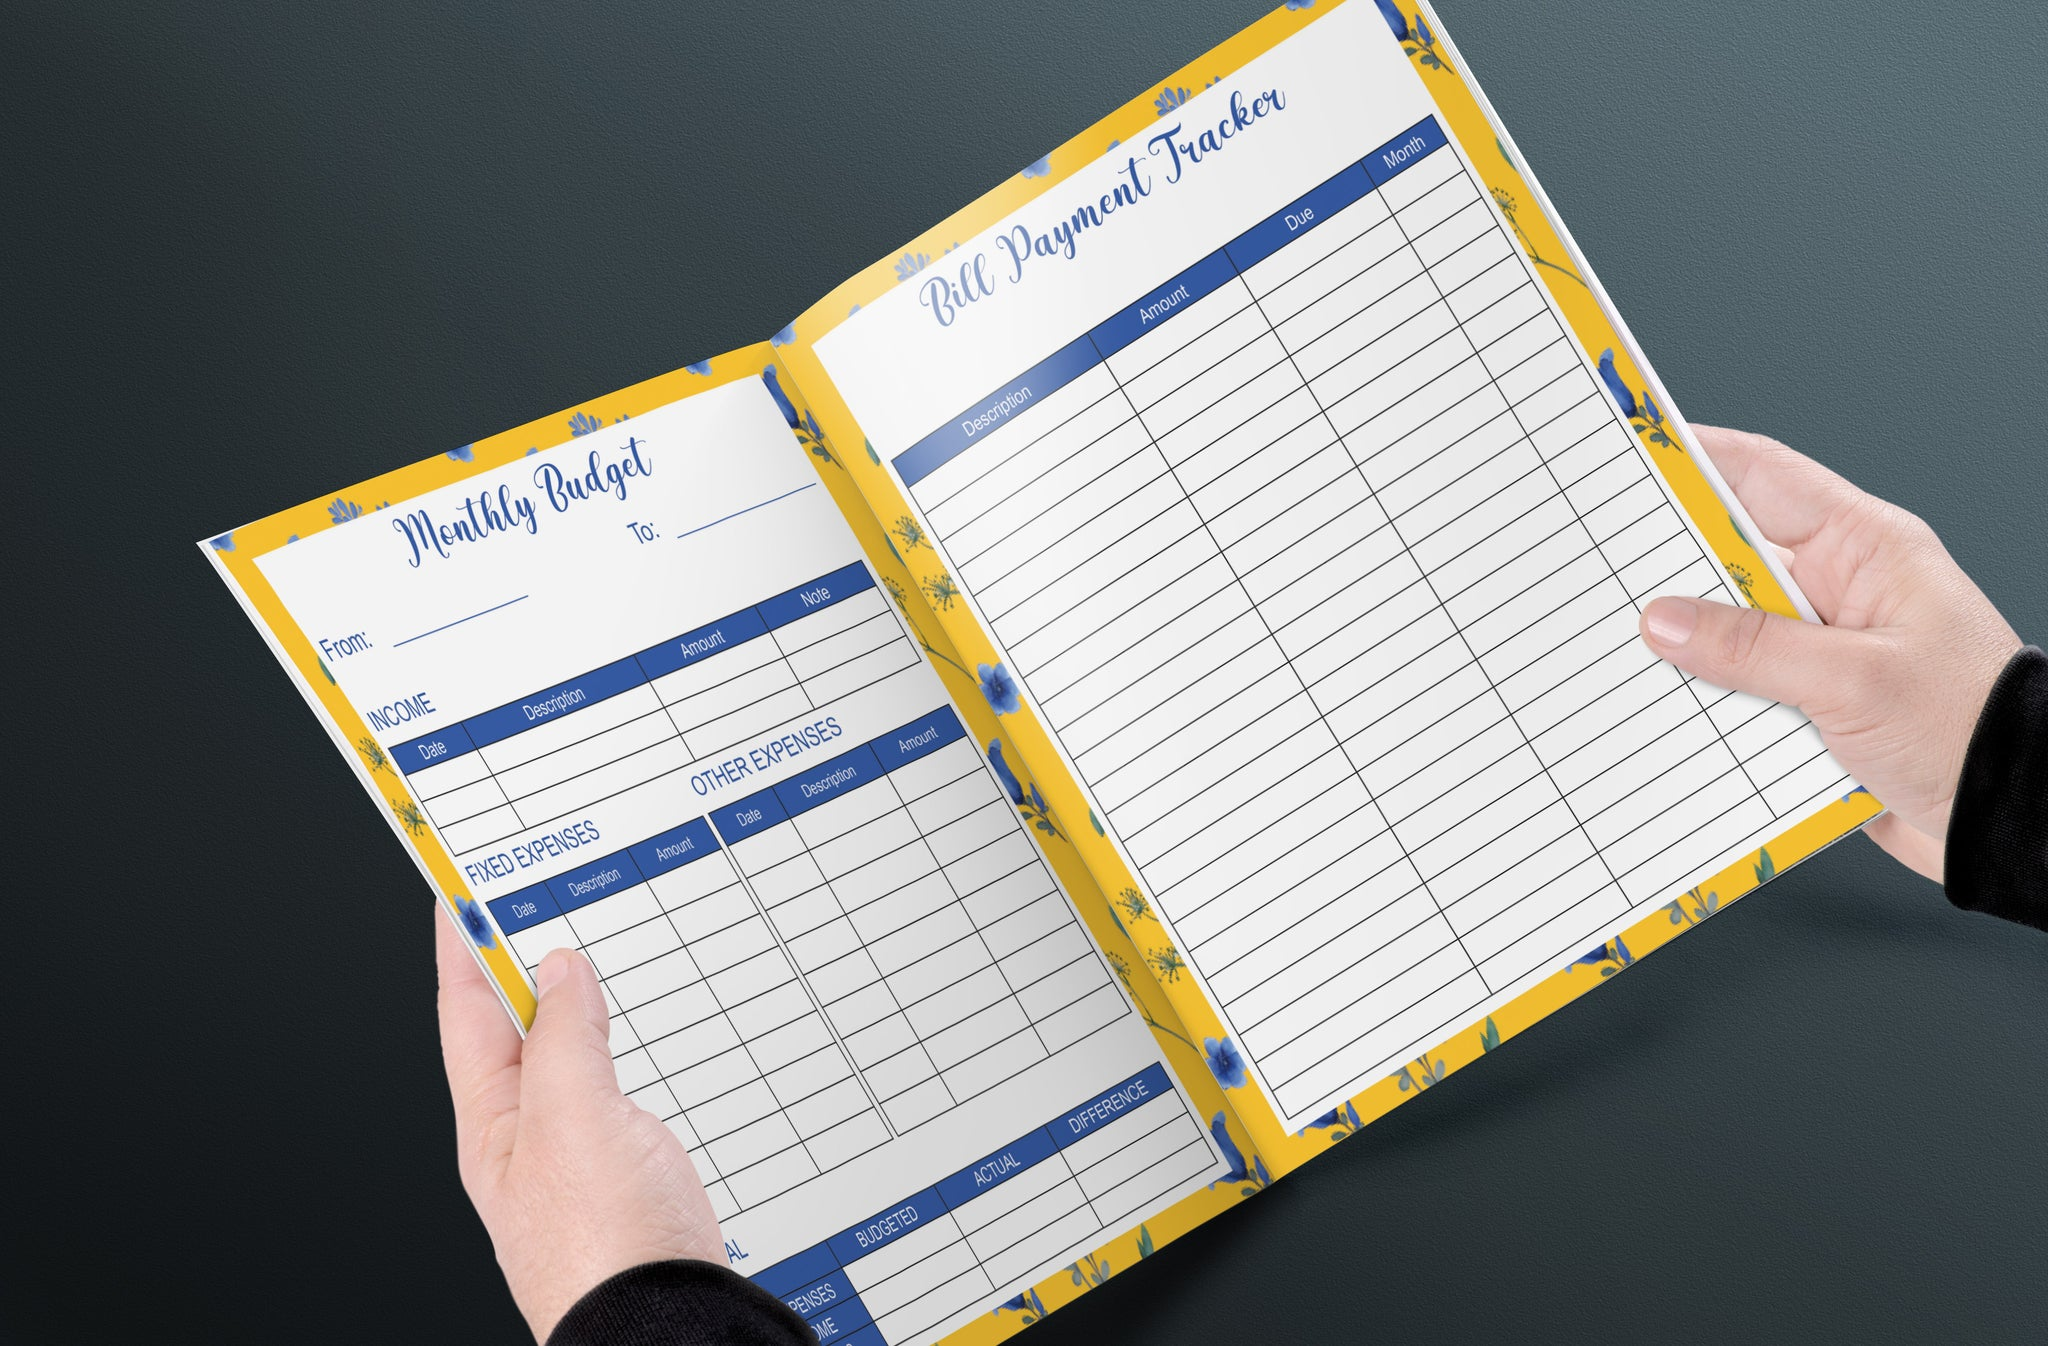 Budgeting Workbook, Simple Budget Planner, Monthly, Daily Budget Planner, Financial Planner